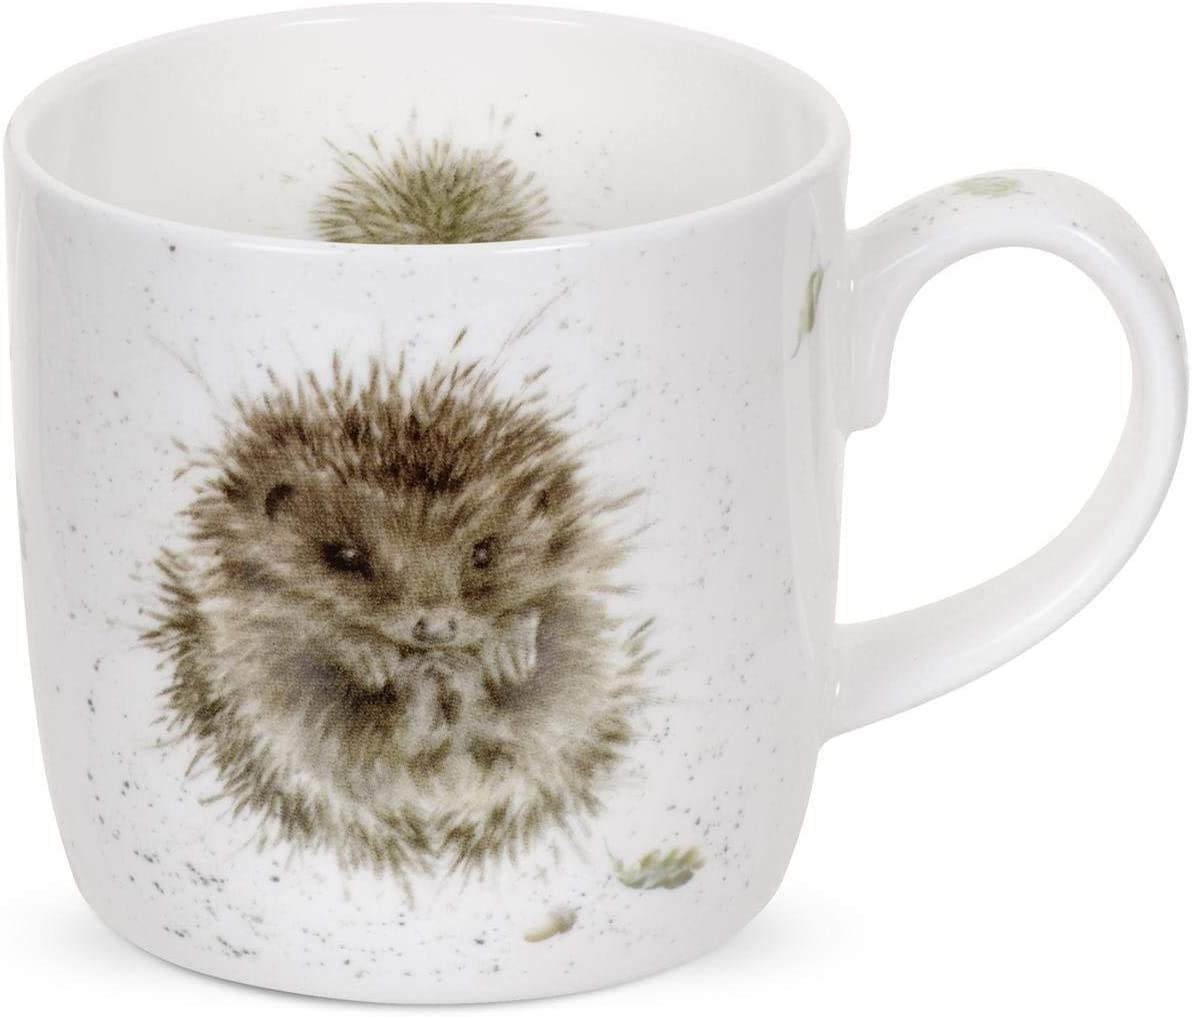 Royal Worcester Wrendale Designs Mug - Awakening Hedgehog, 11 oz